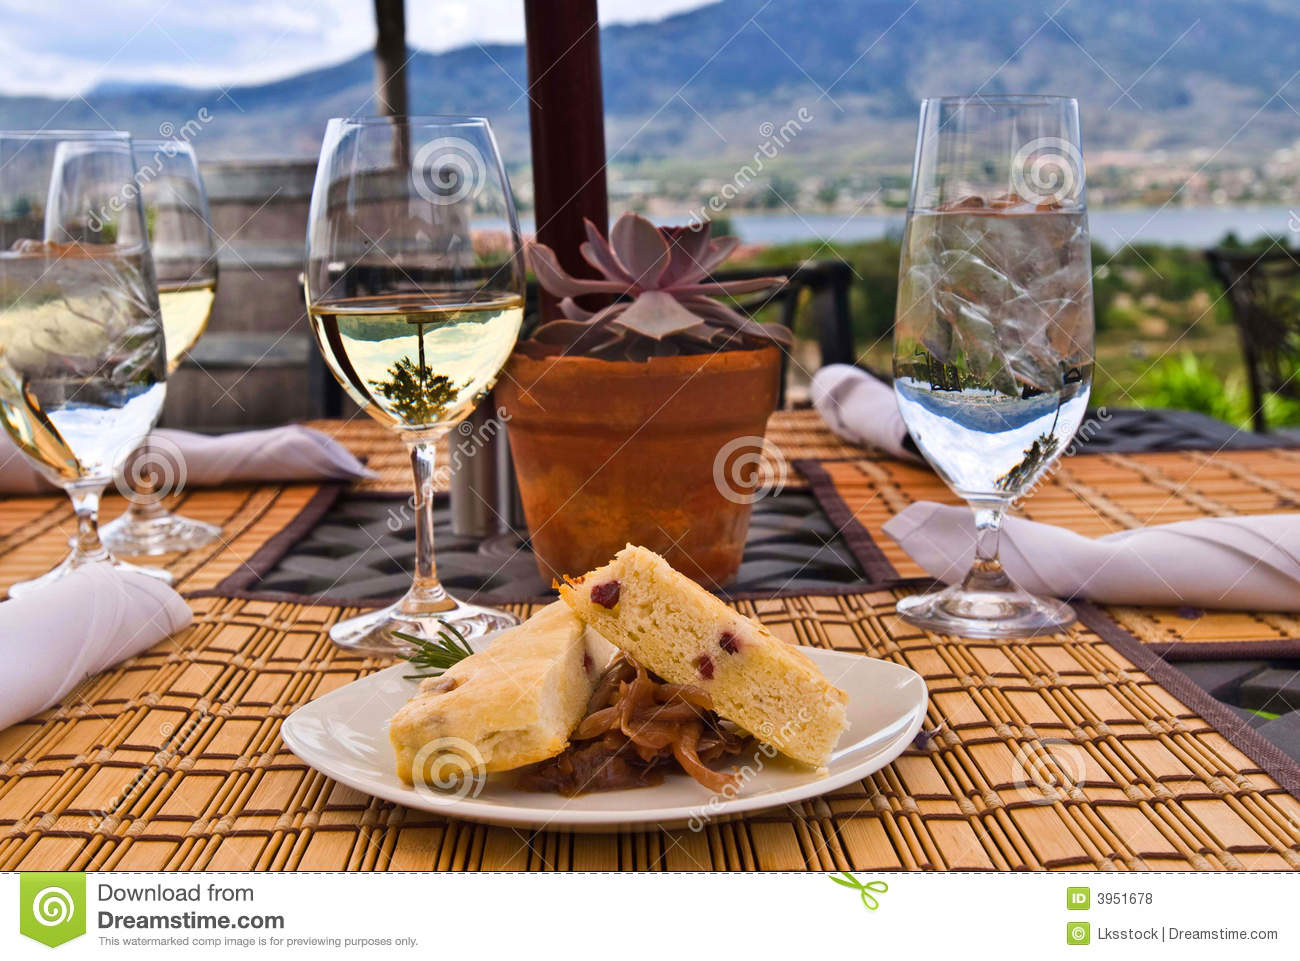 Meal at outdoor restaurant royalty free stock photos for Meal outdoors